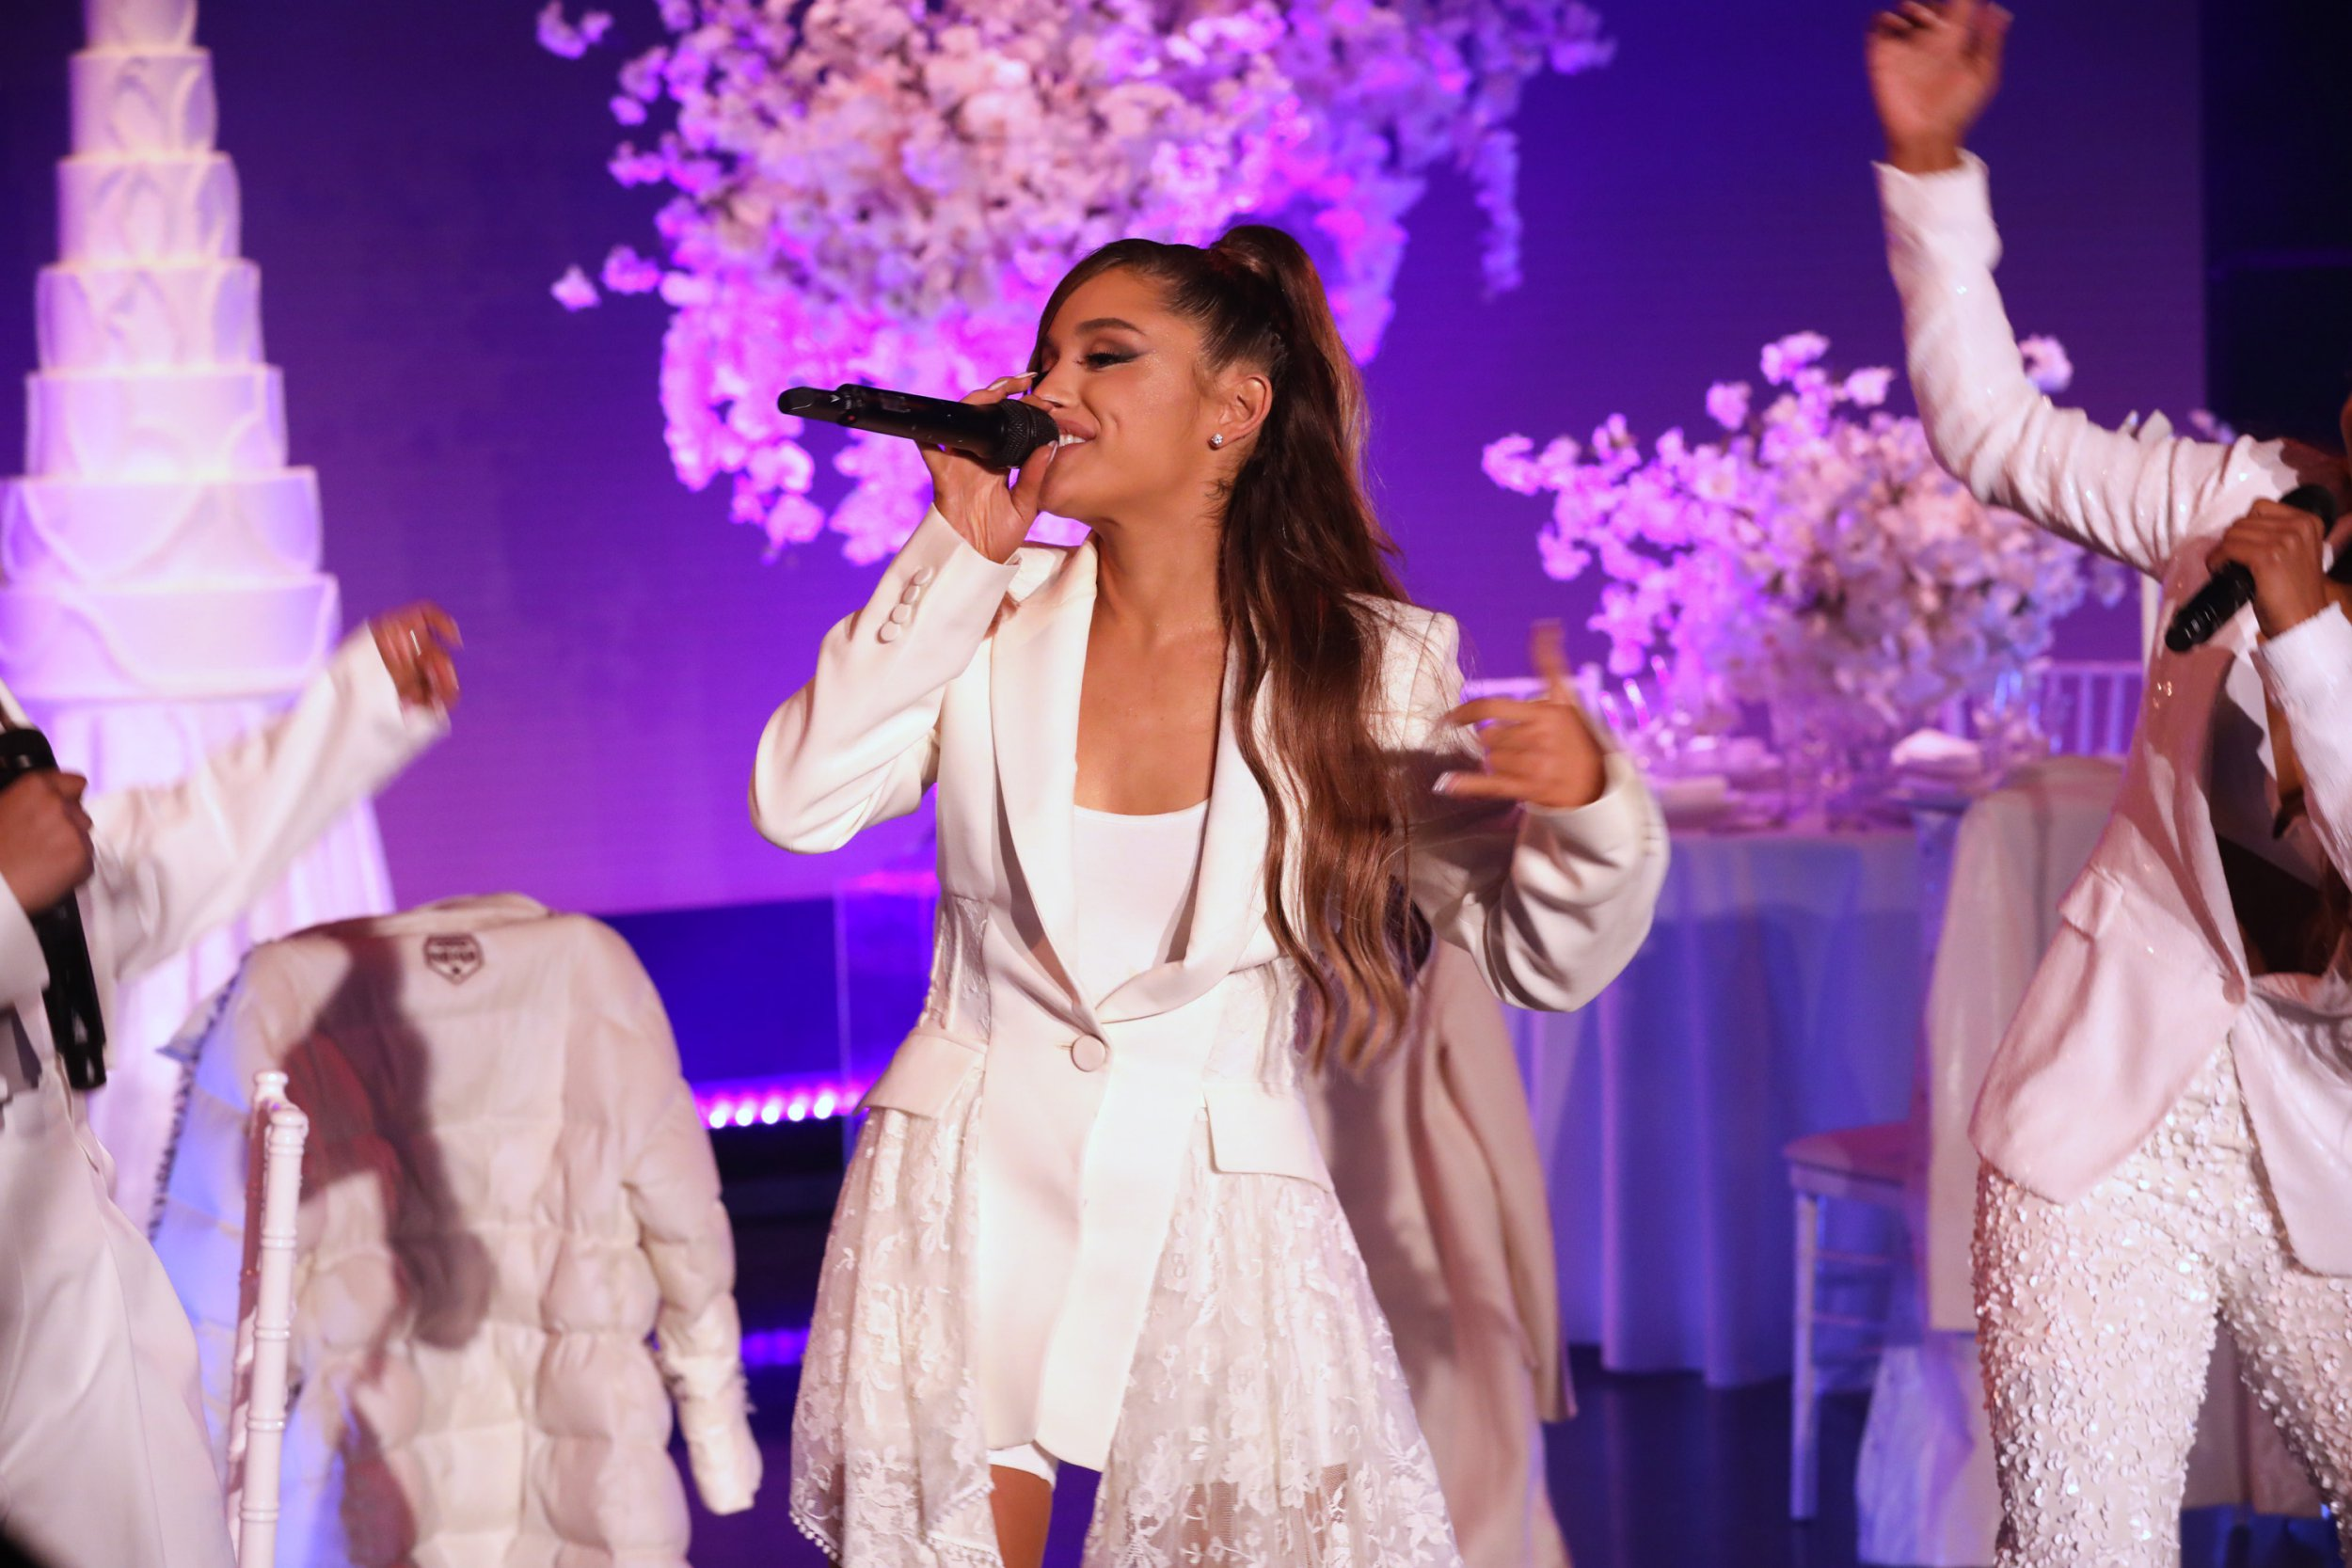 Ariana Grande performs Thank U, Next on Ellen and we're living for it